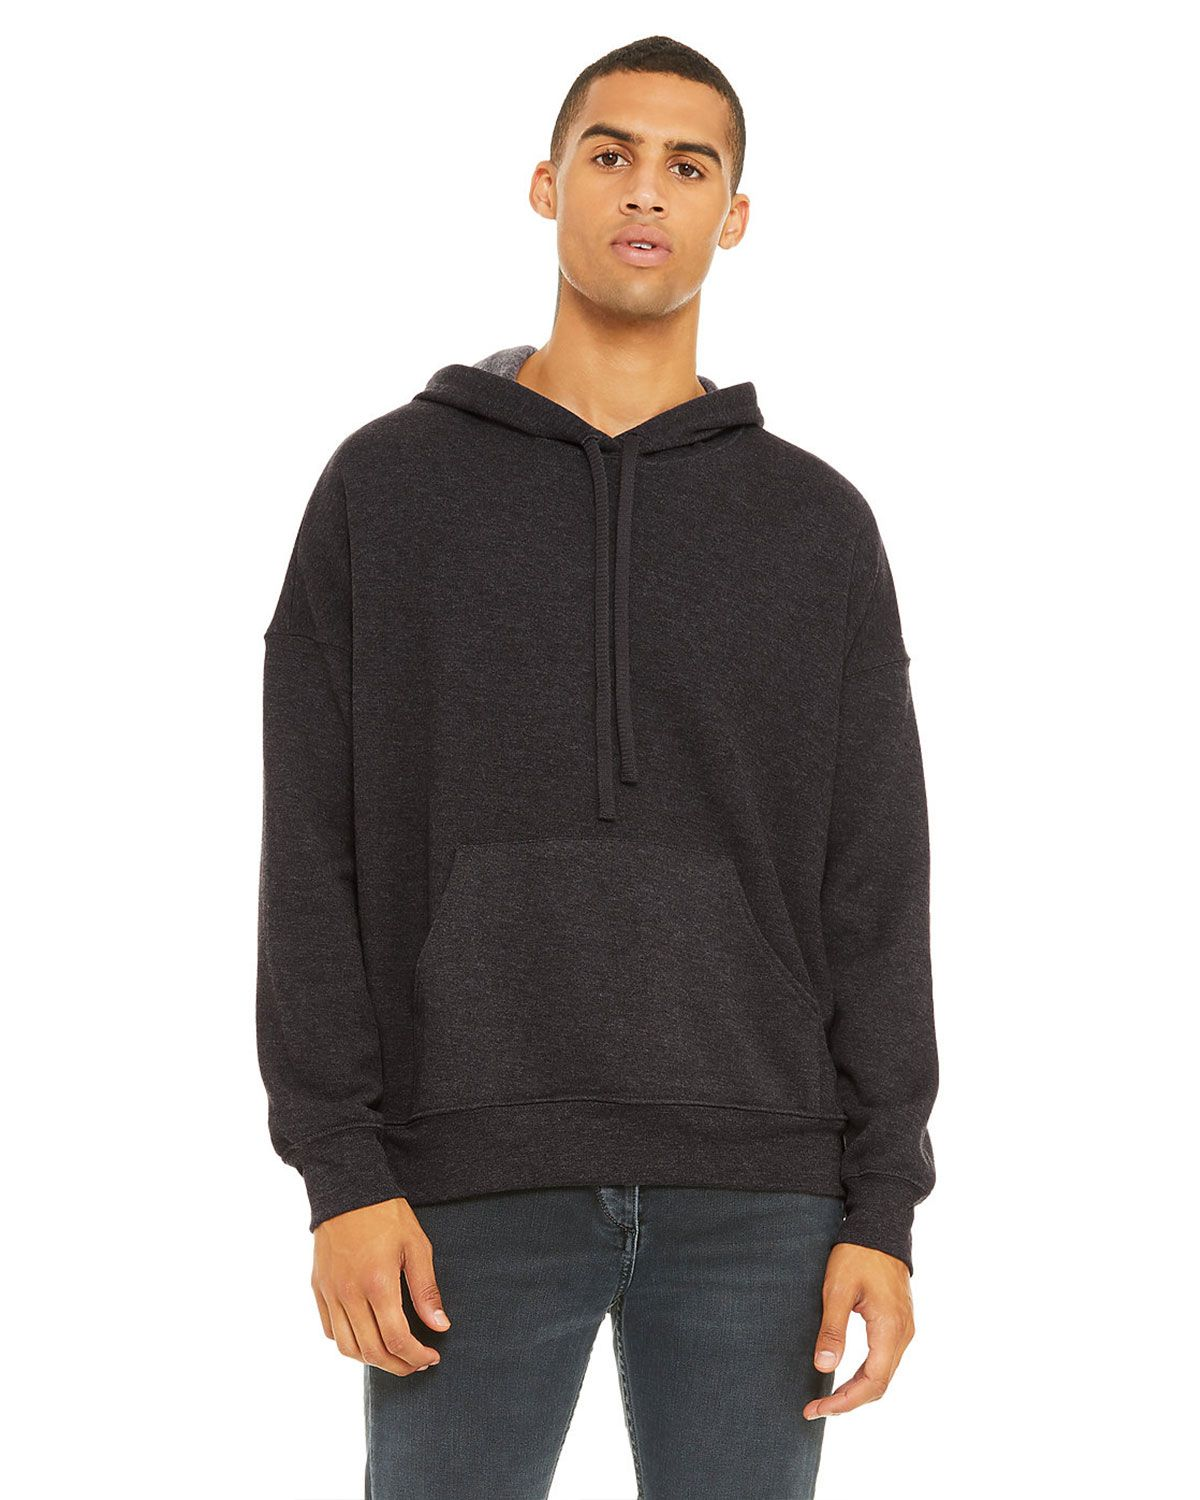 Bella + Canvas 3729 Unisex Pullover Hoodie - Dark Gry Heather - L 3729